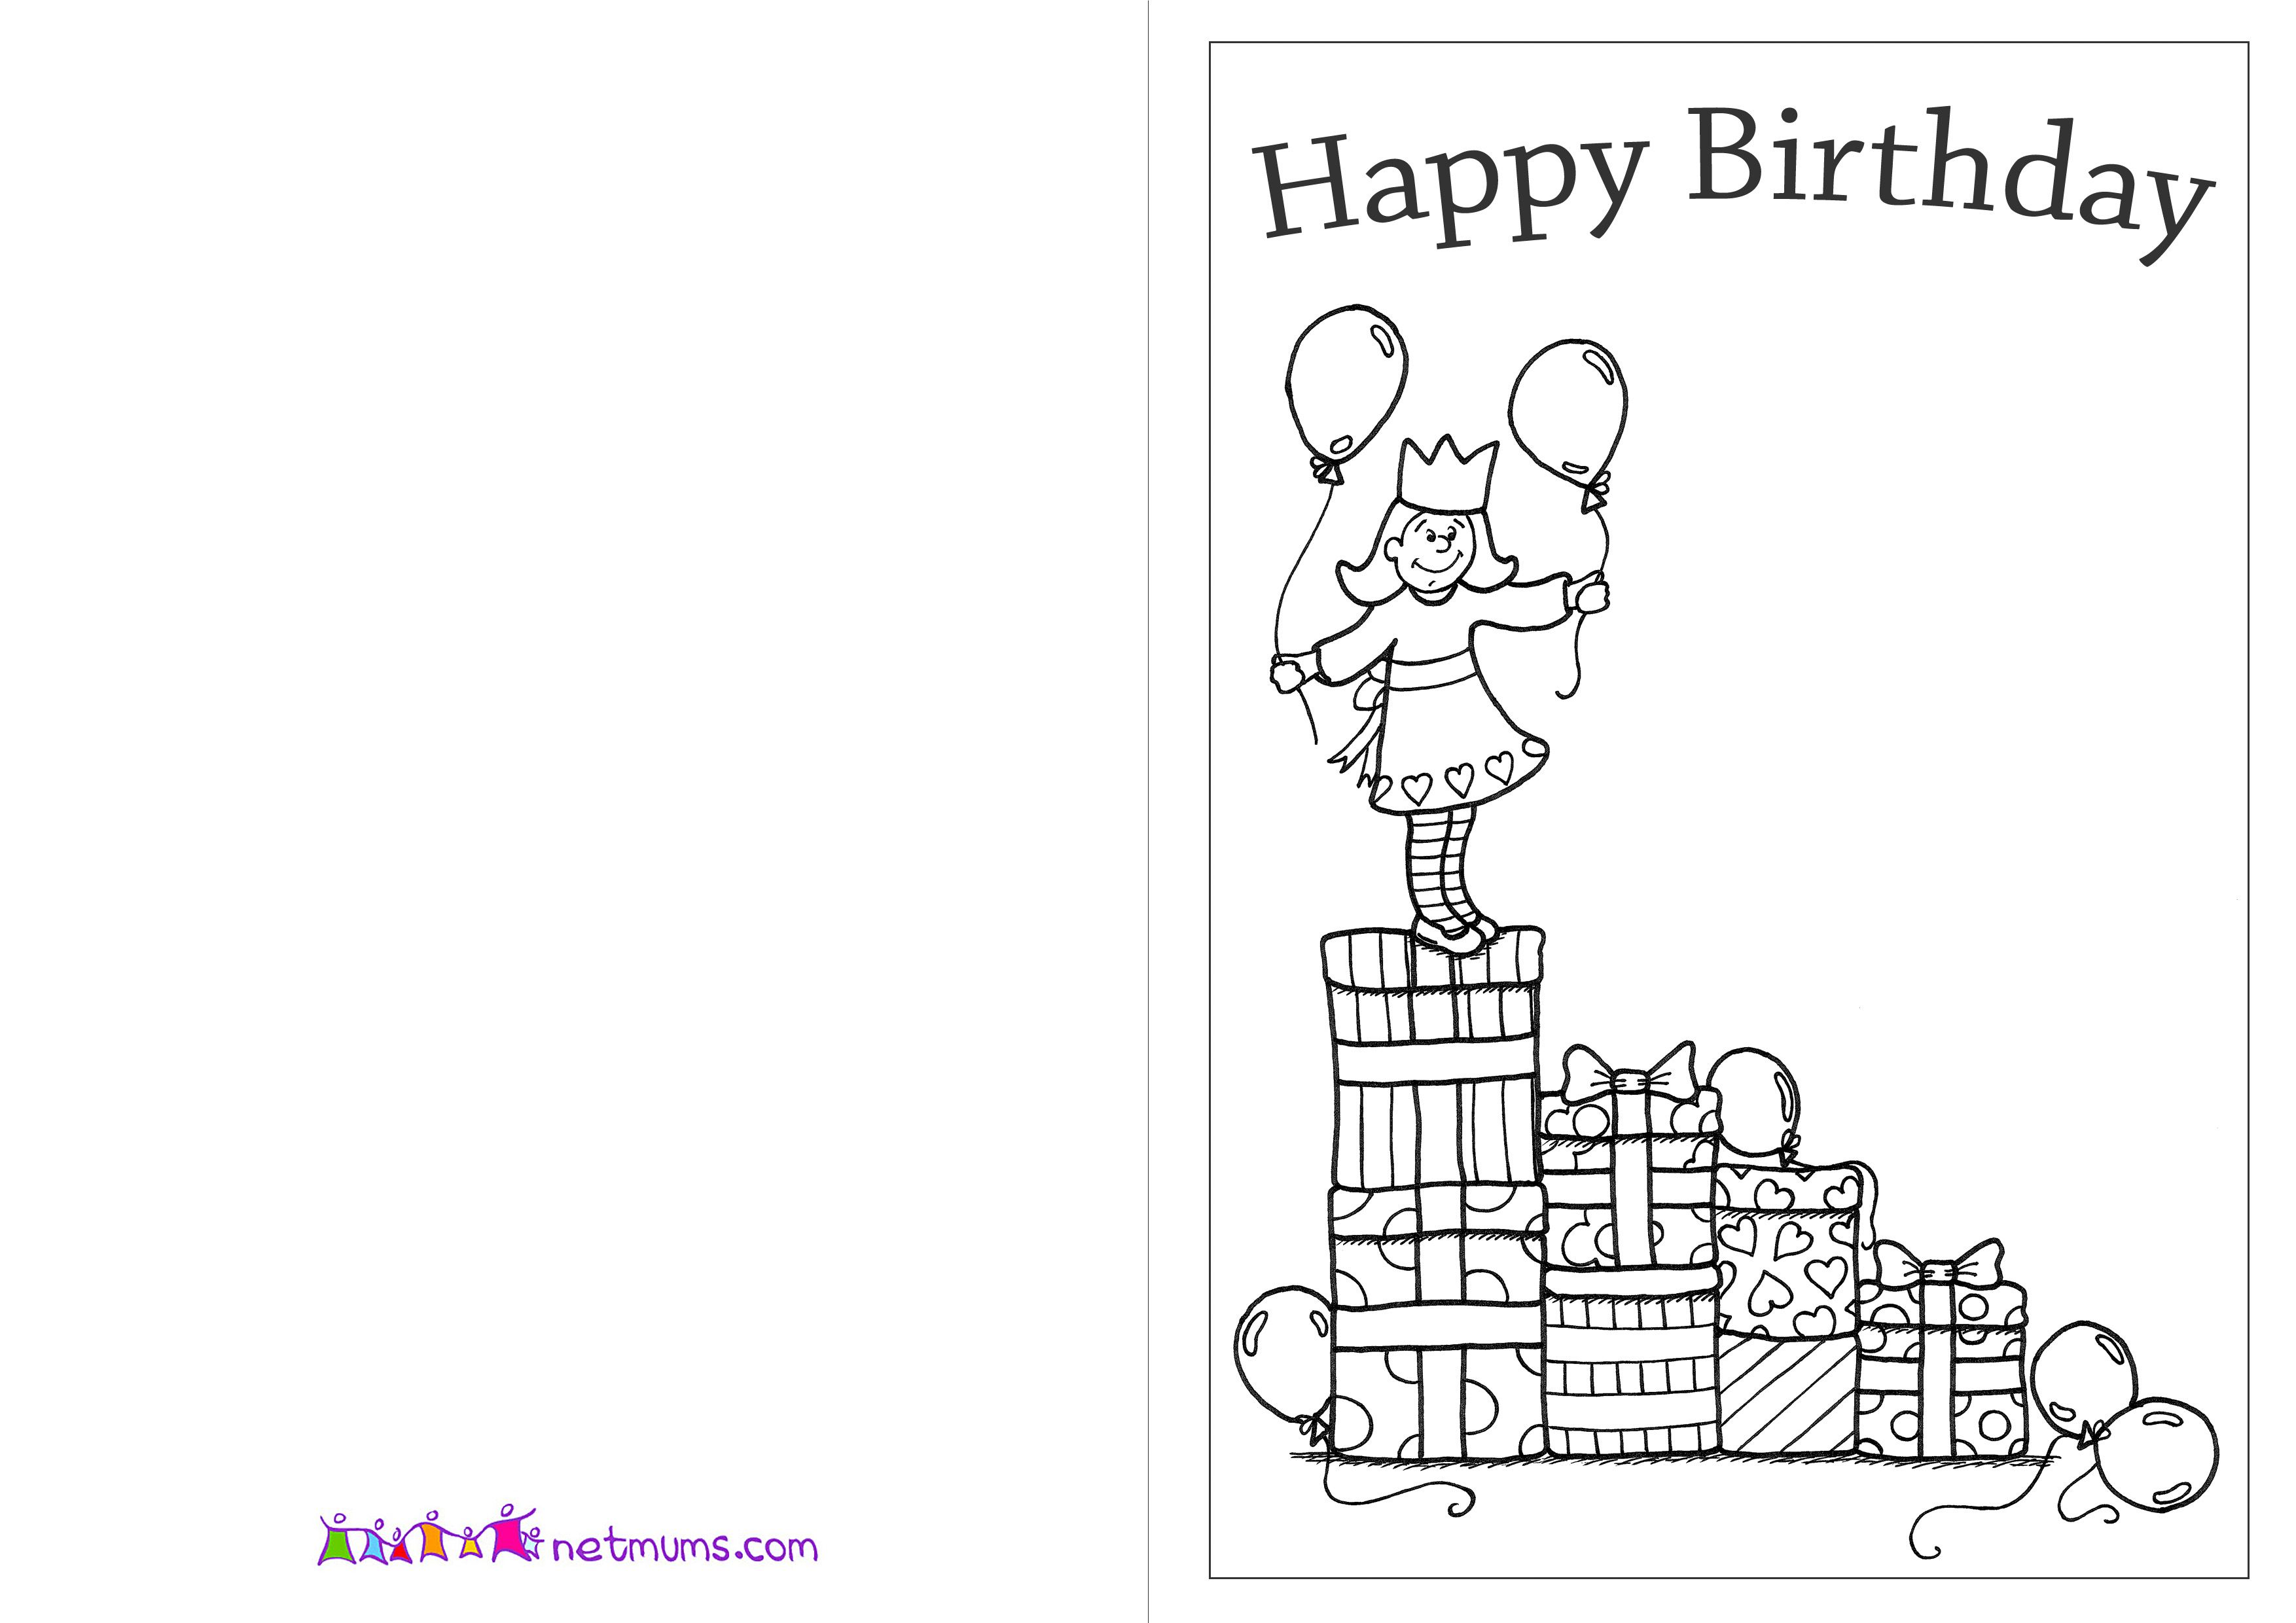 Birthday Cards And Pictures To Print And Colour Coloring